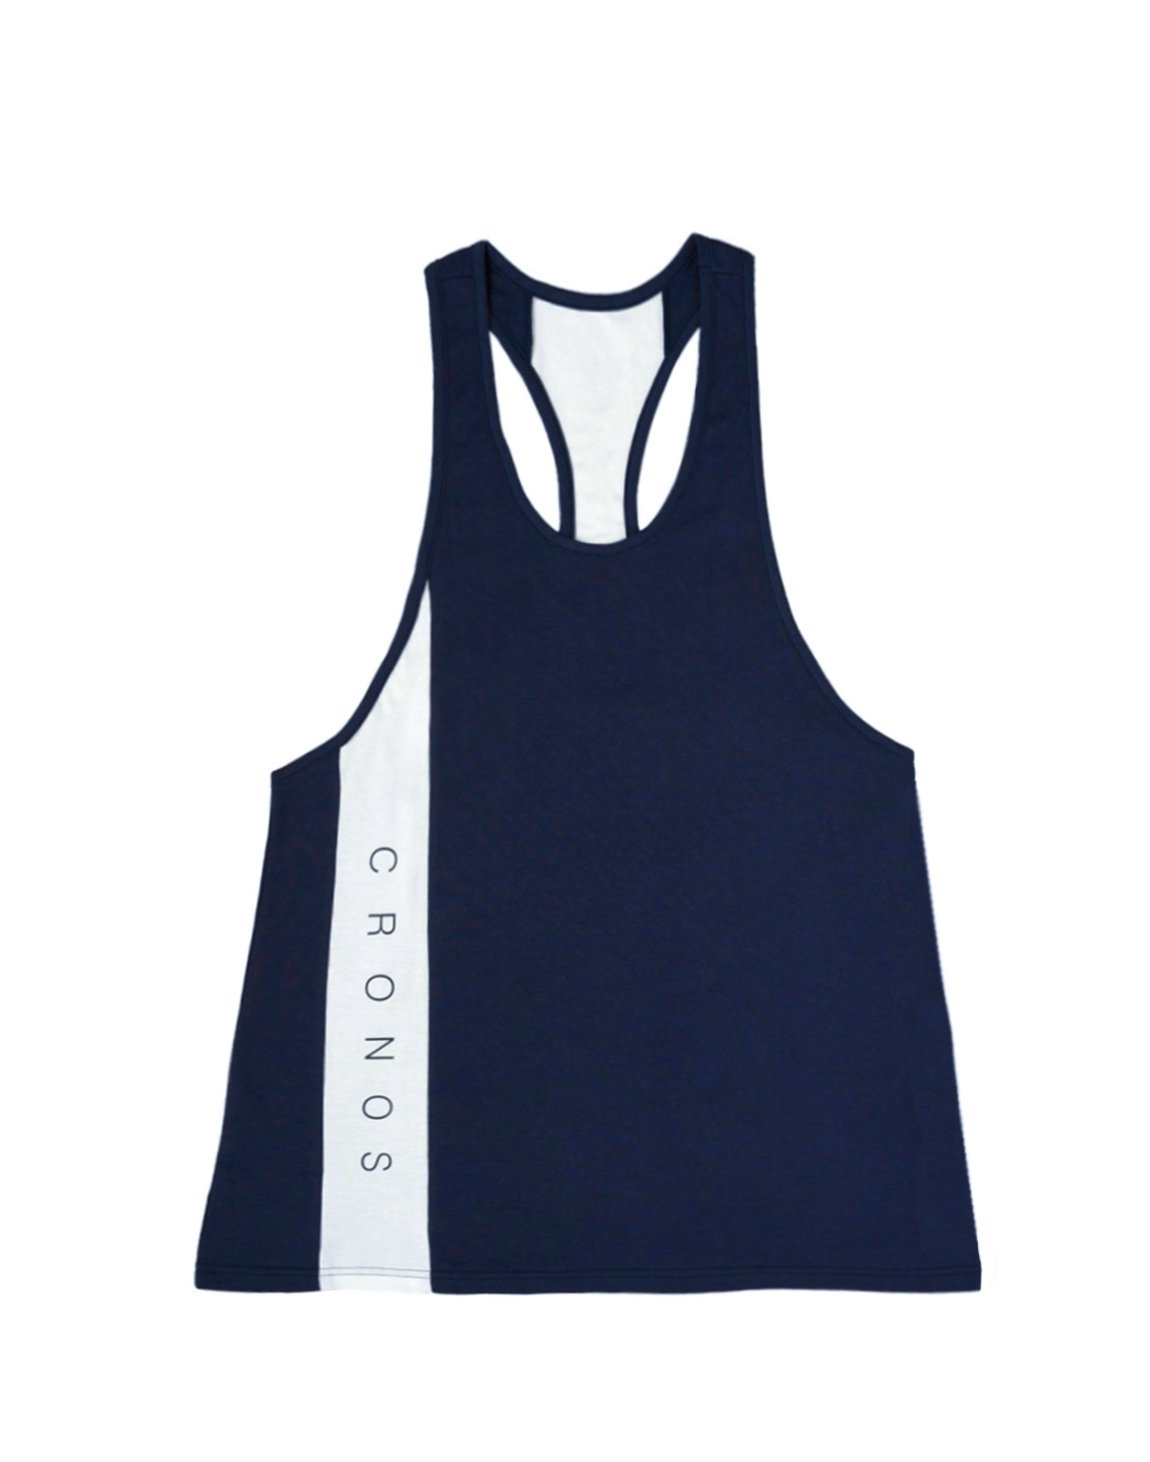 <img class='new_mark_img1' src='https://img.shop-pro.jp/img/new/icons55.gif' style='border:none;display:inline;margin:0px;padding:0px;width:auto;' />CRONOS NEW LINE TANK TOP【NAVY】